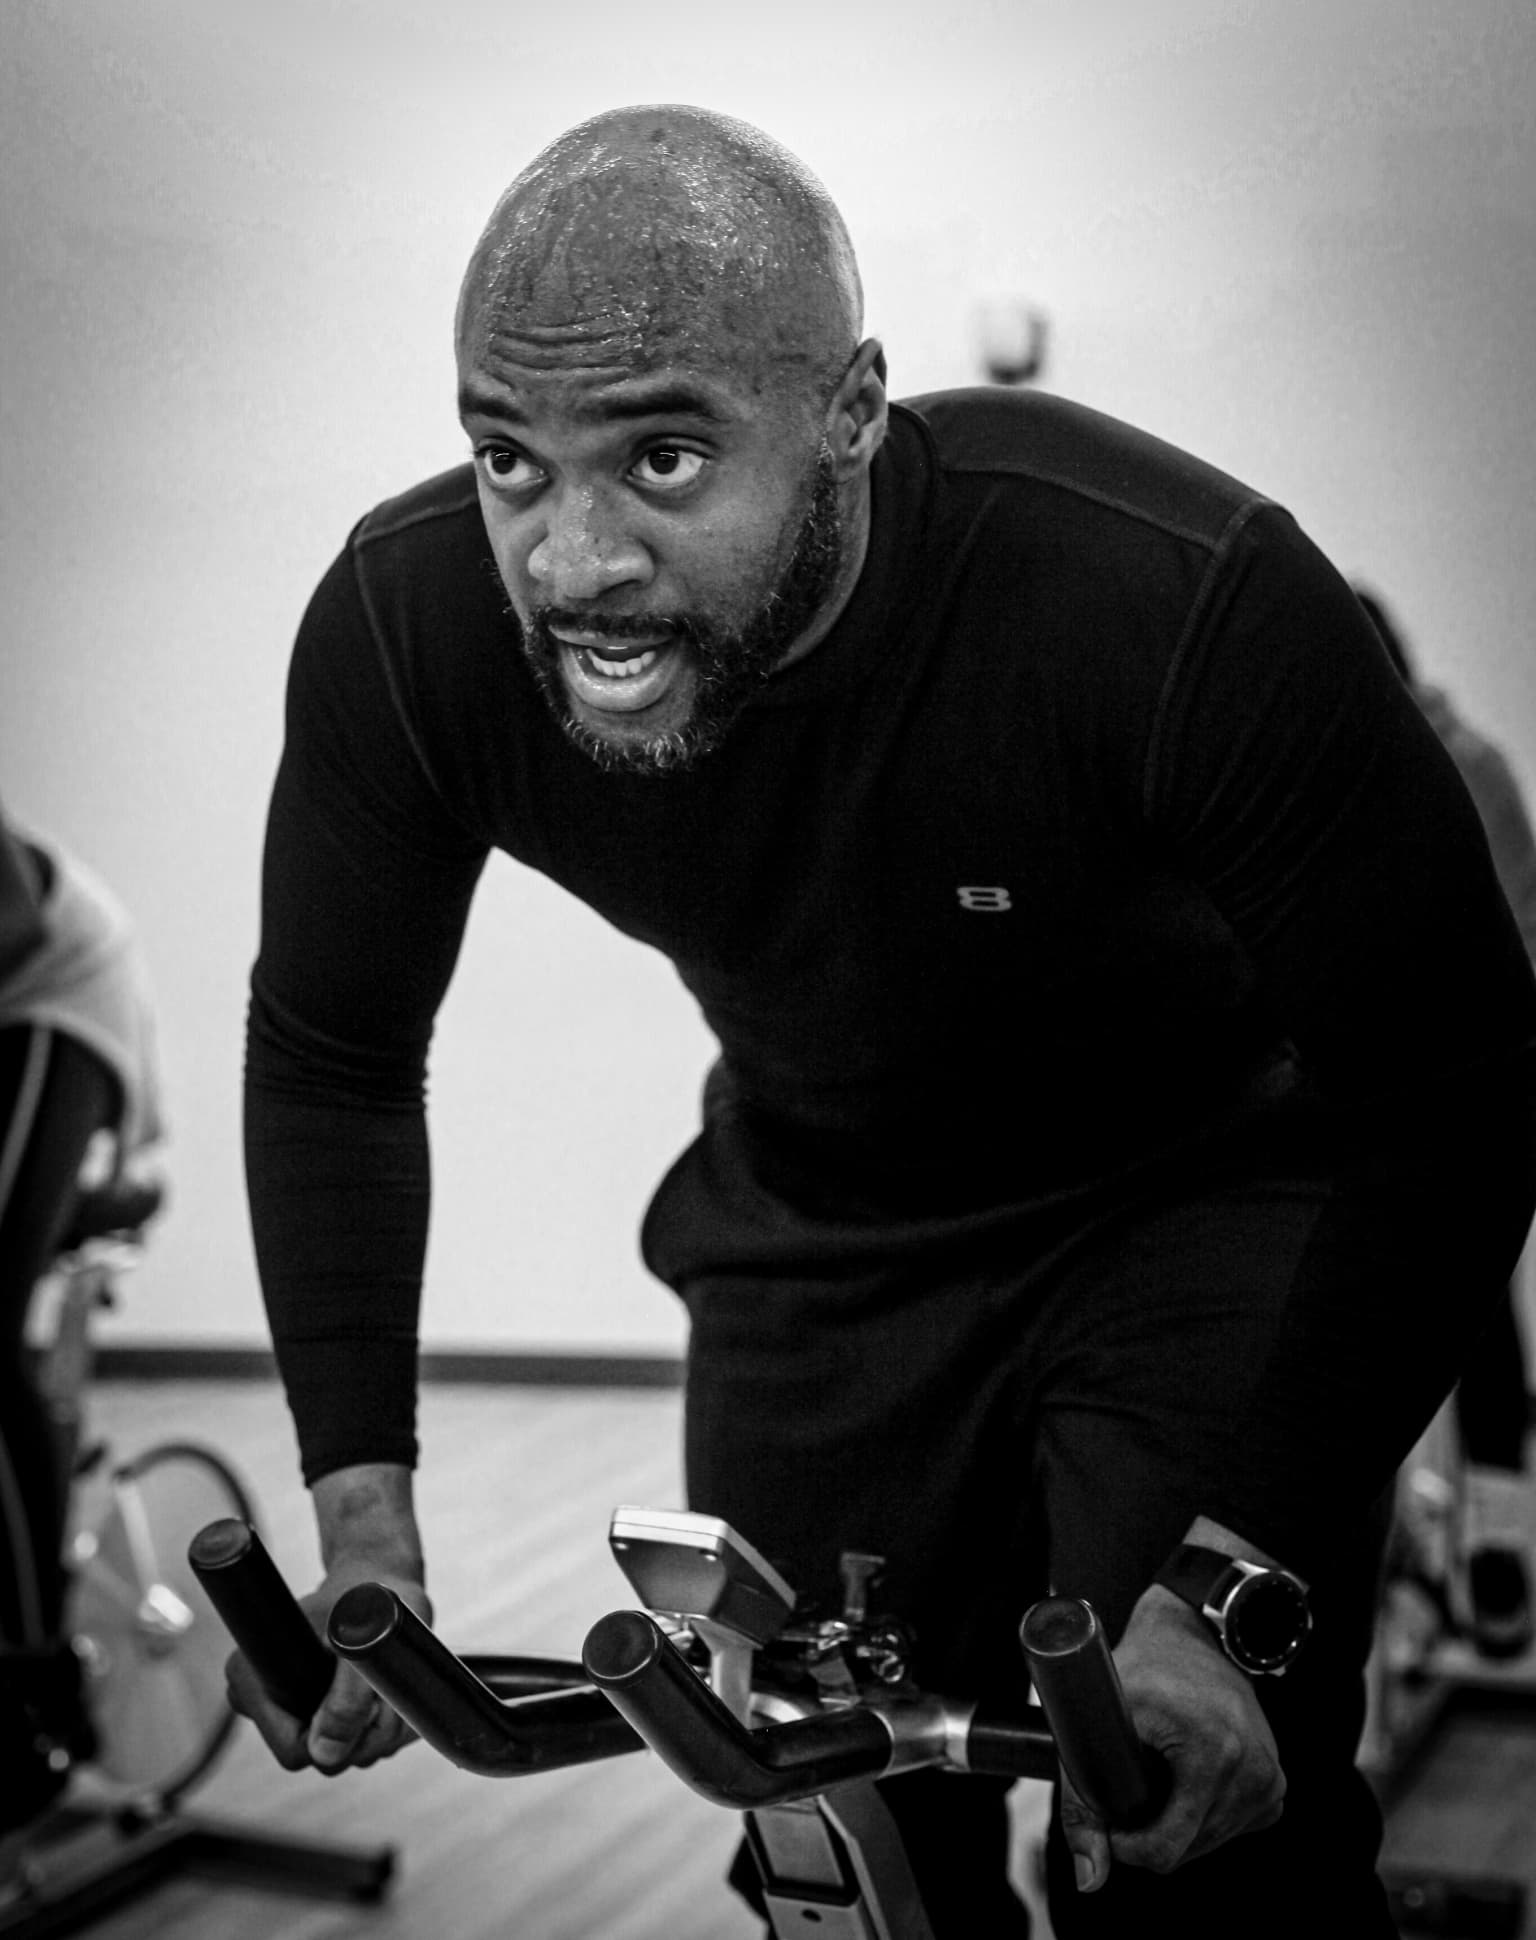 HipHopCycling with Coach Cody